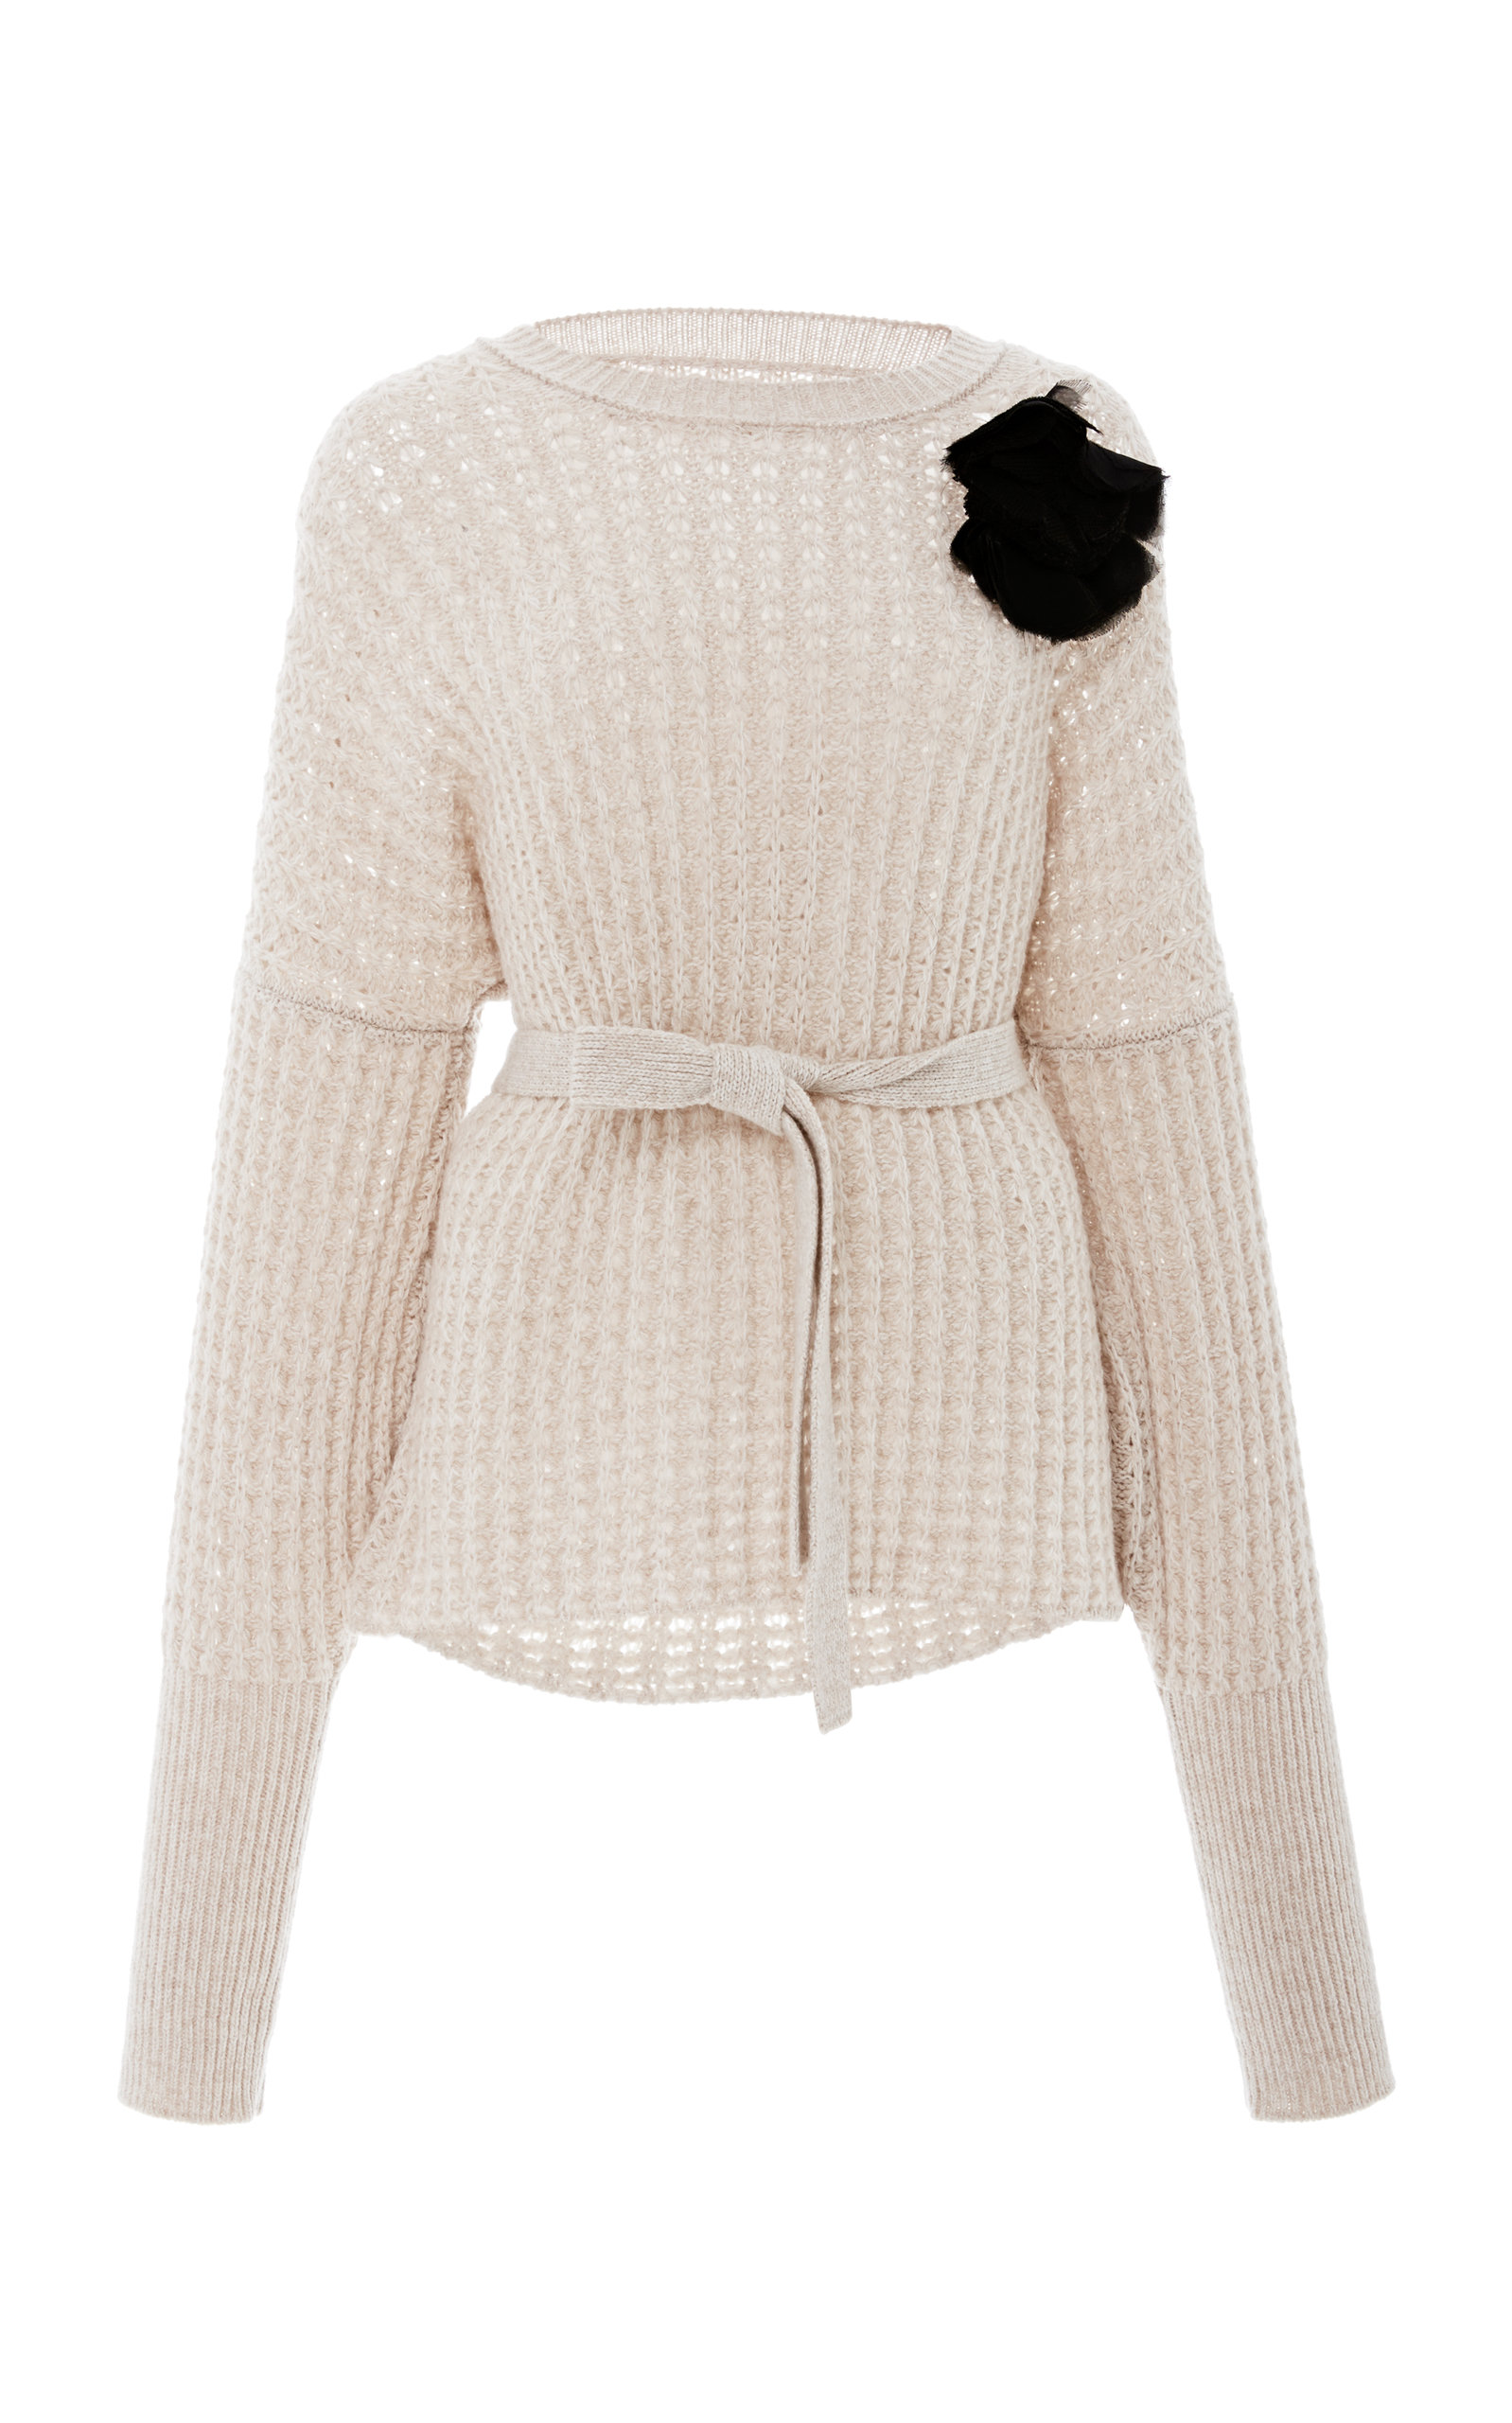 BROCK COLLECTION Kaori Corsage Marled Knit Sweater in Neutrals